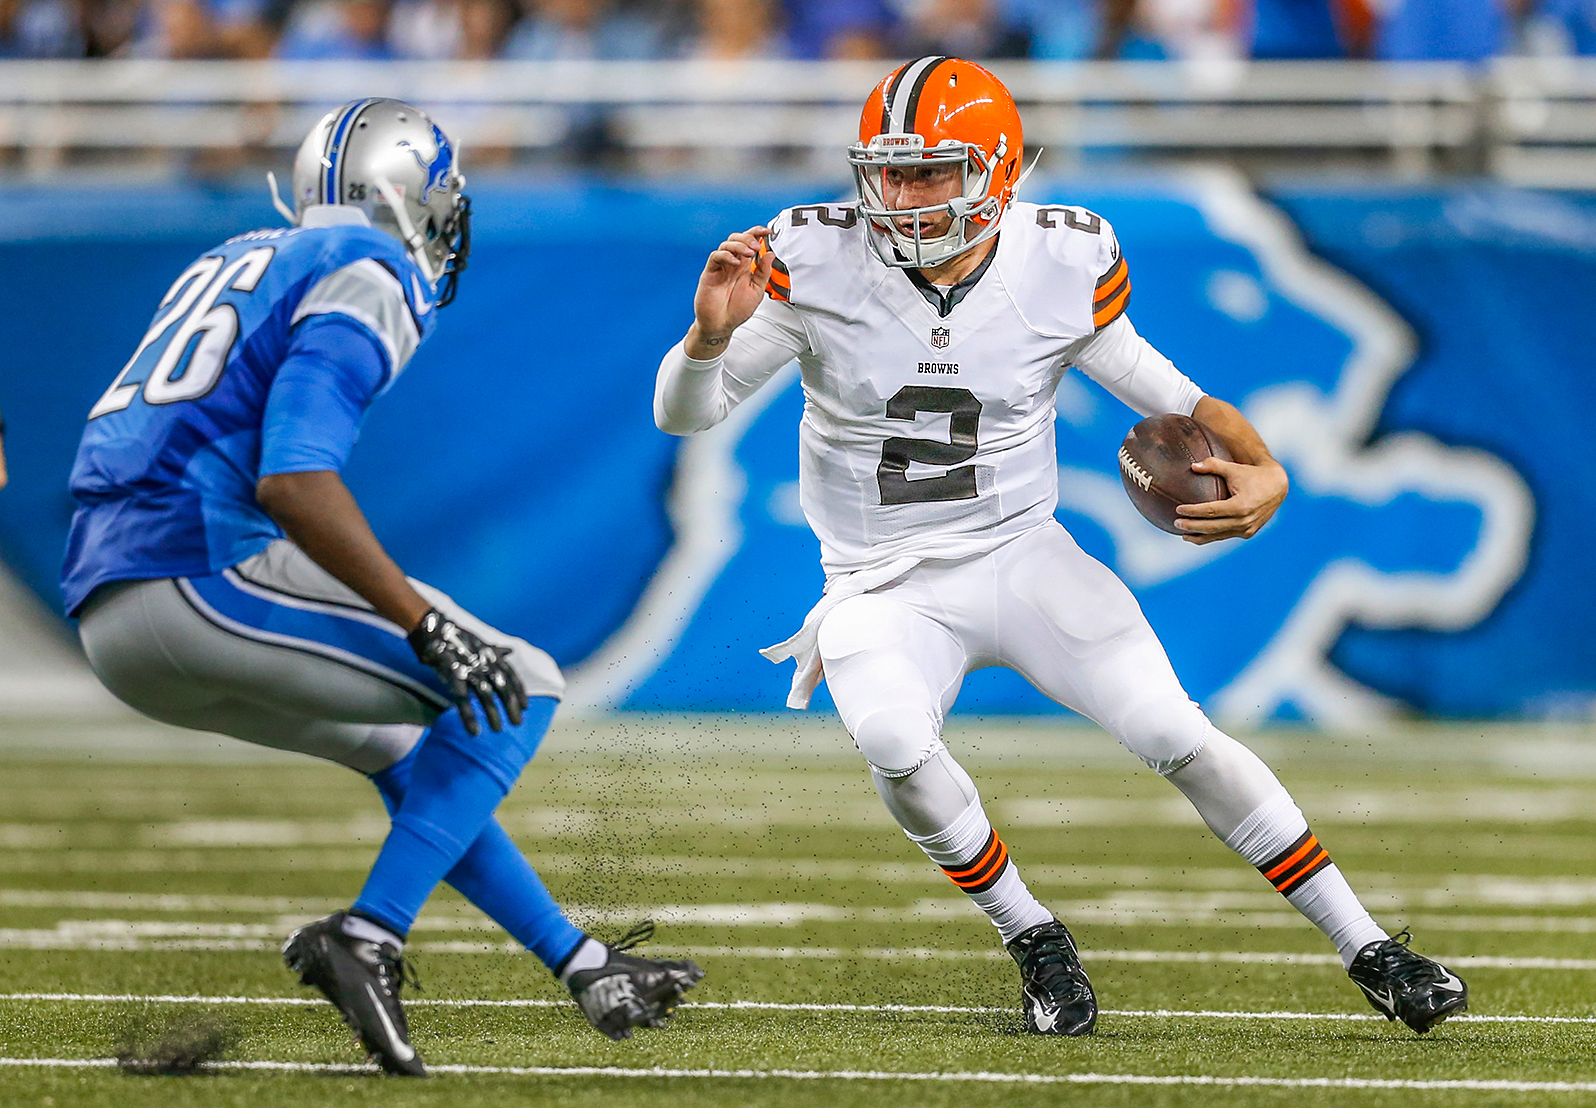 Cheap NFL Jerseys - Lions rally past Browns